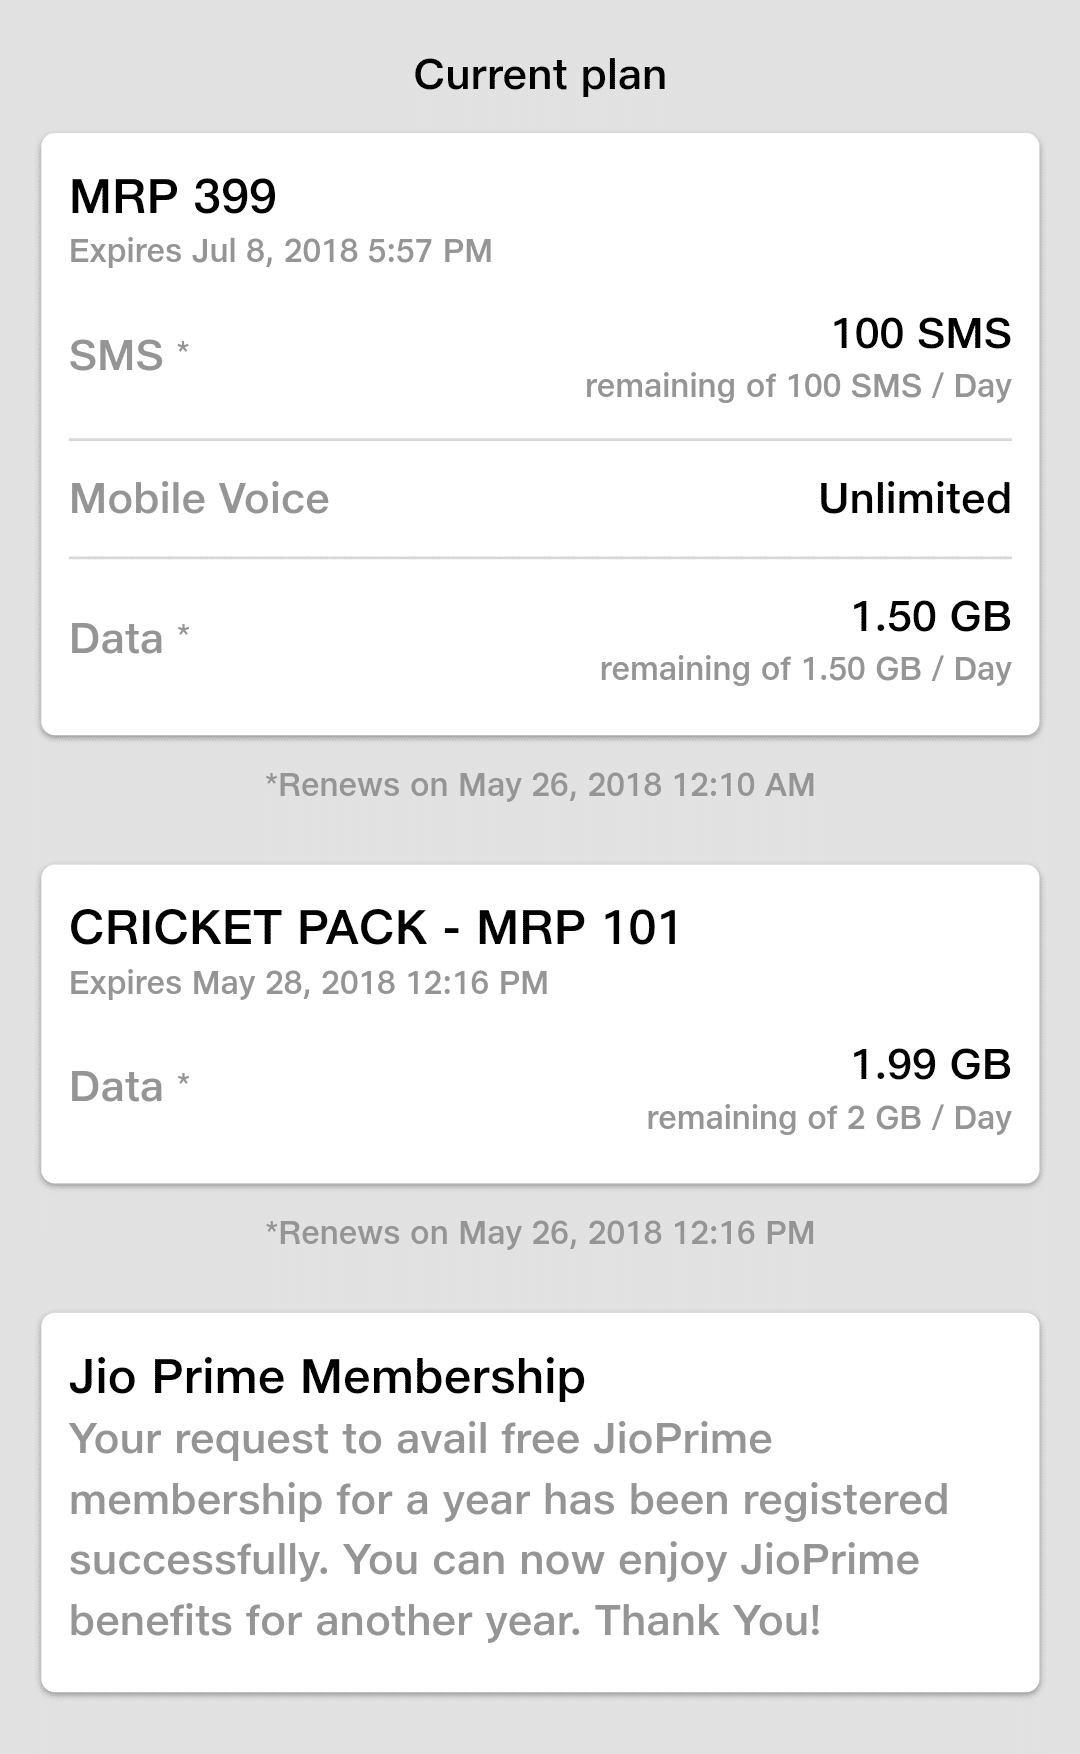 Reliance Jio Cricket Pack Offers Free 2GB Data Per Day For